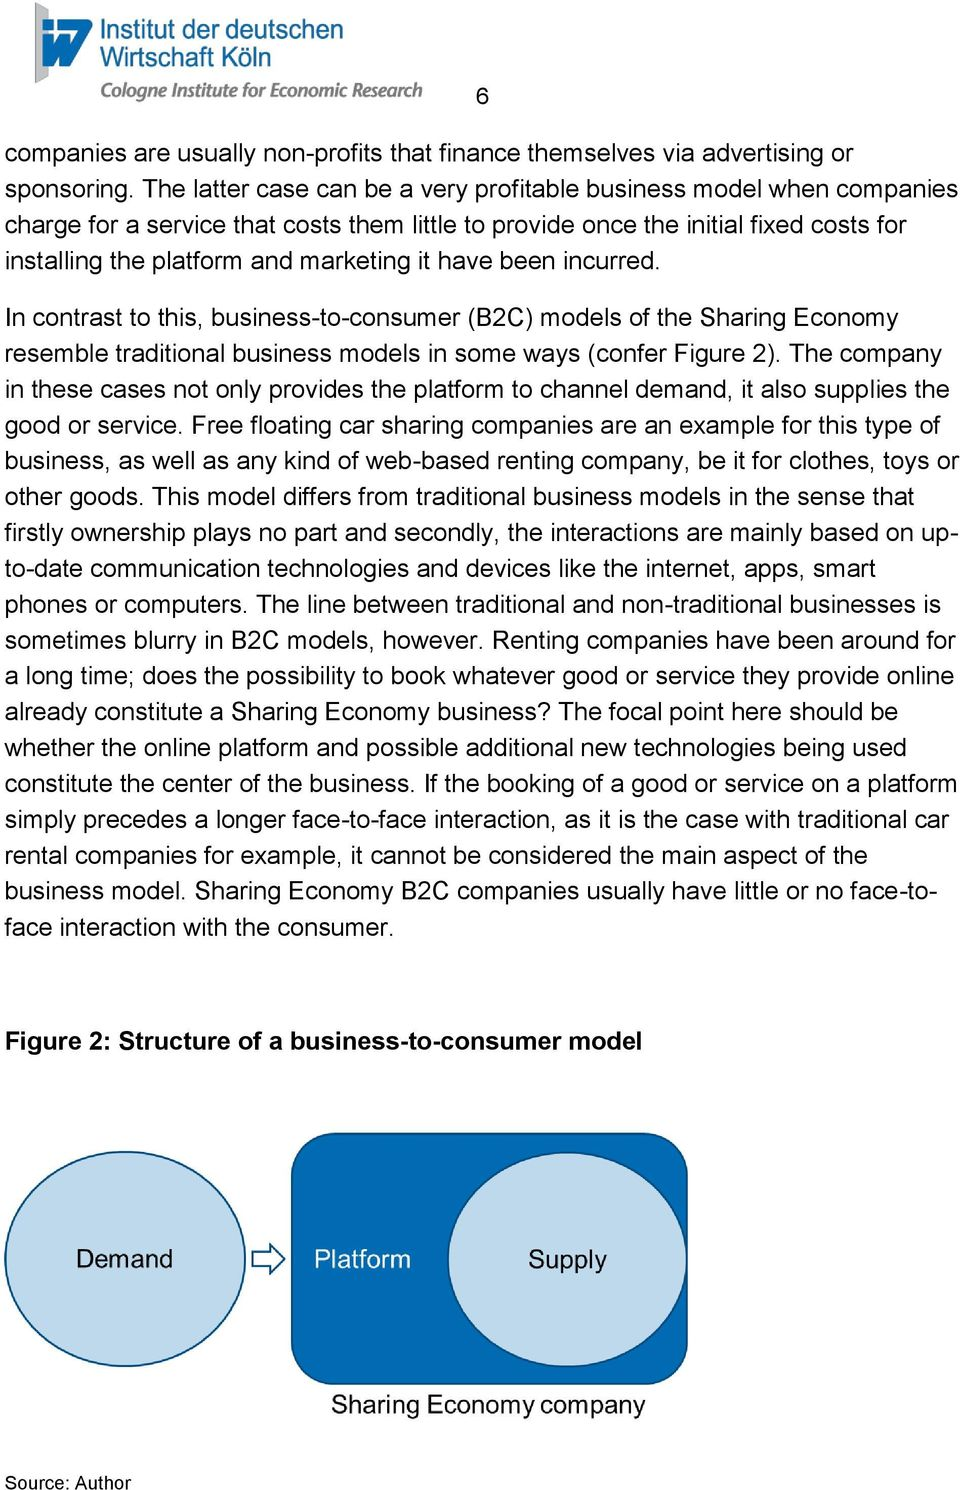 have been incurred. In contrast to this, business-to-consumer (B2C) models of the Sharing Economy resemble traditional business models in some ways (confer Figure 2).